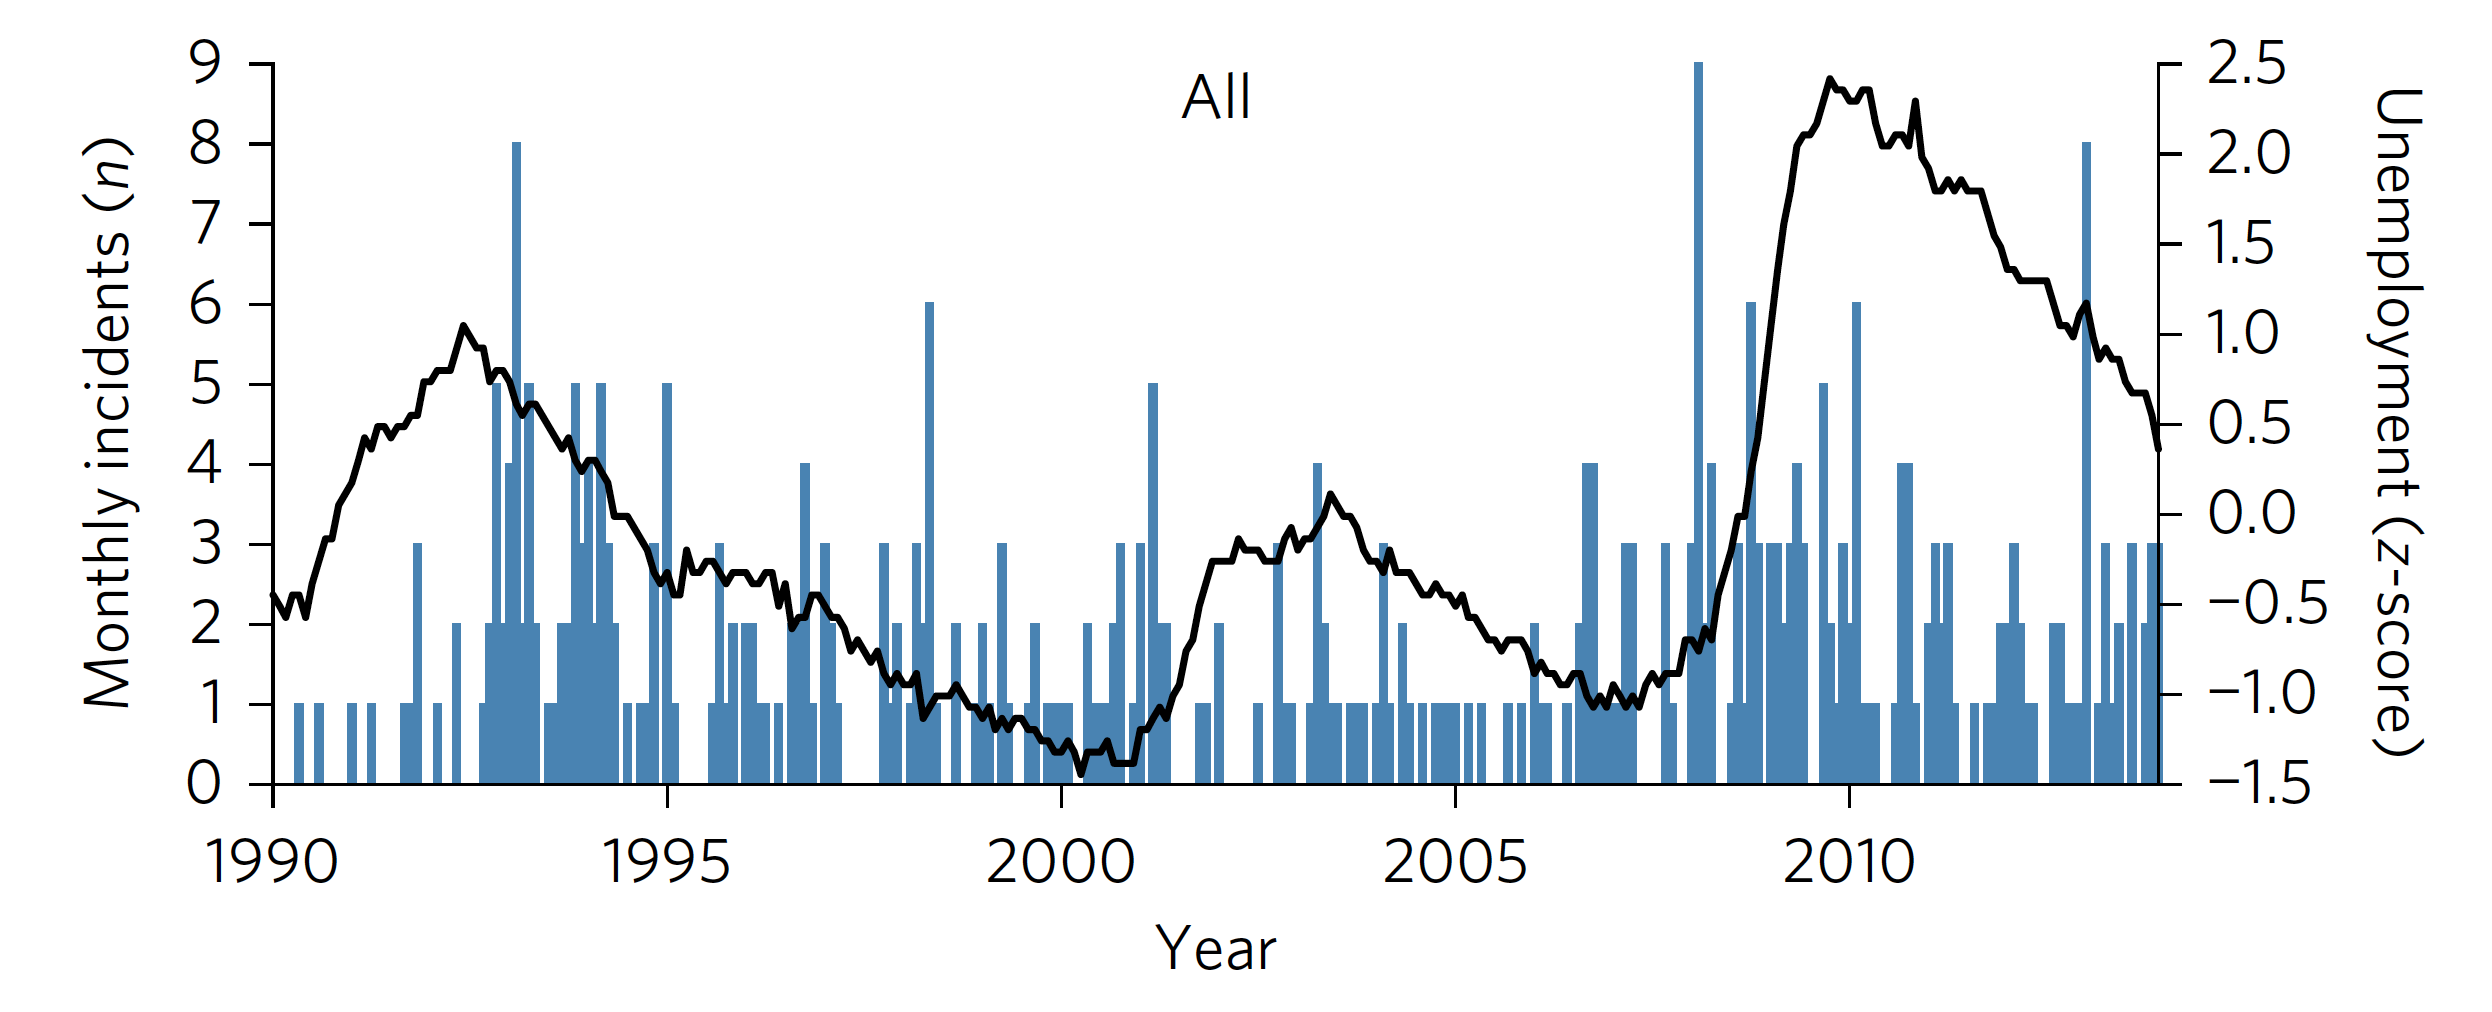 School shooting events in blue, graphed along with a normalized measure of the unemployment rate.